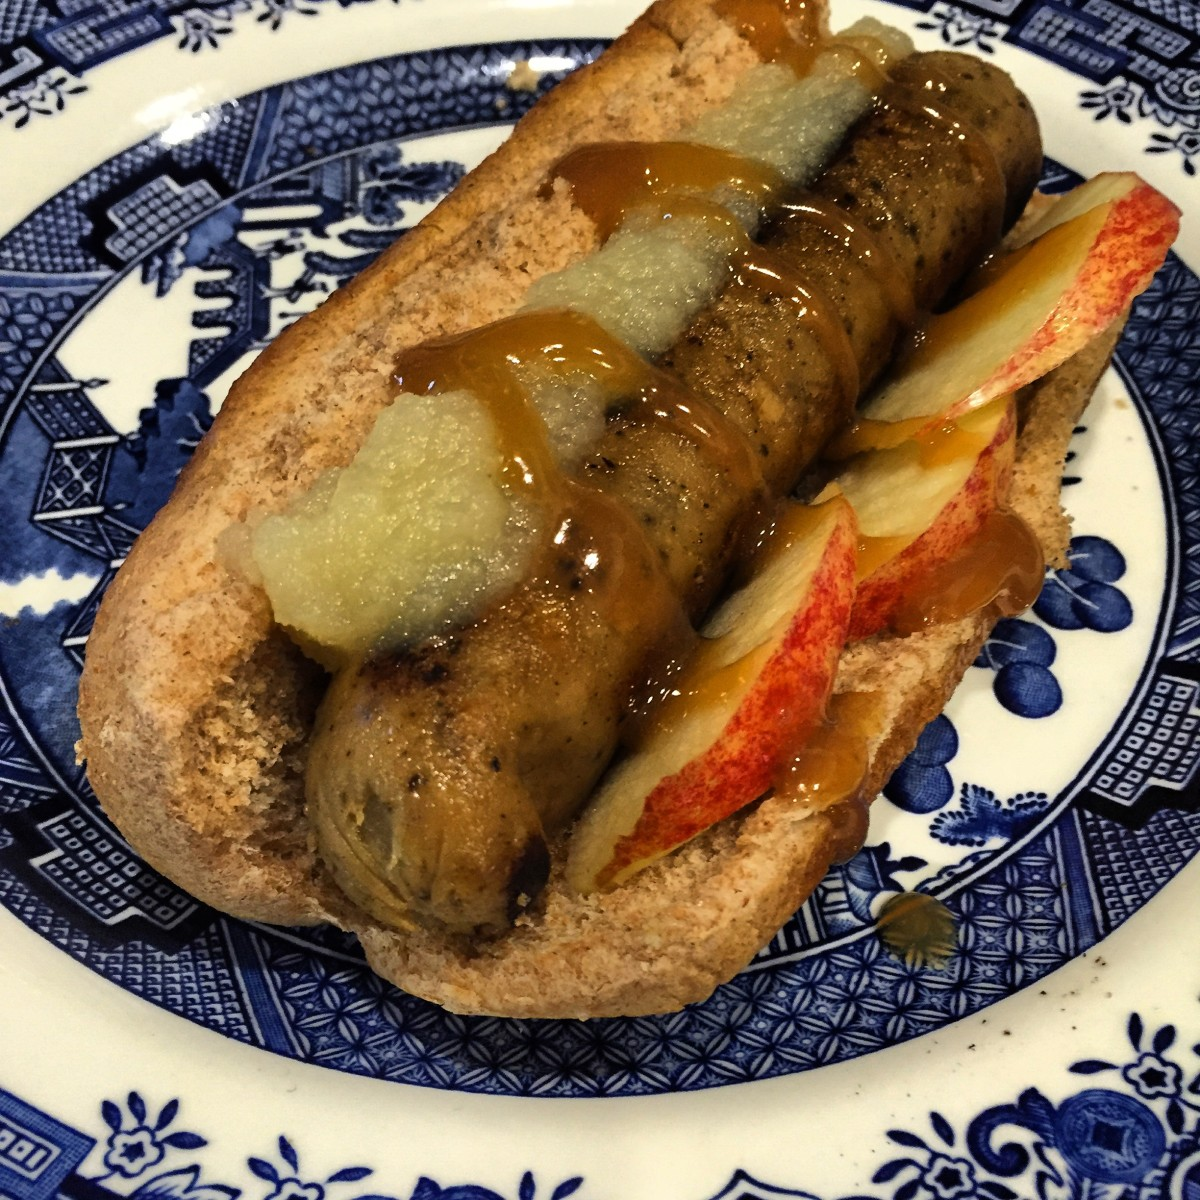 Gourmet Hot Dog: The Big Apple